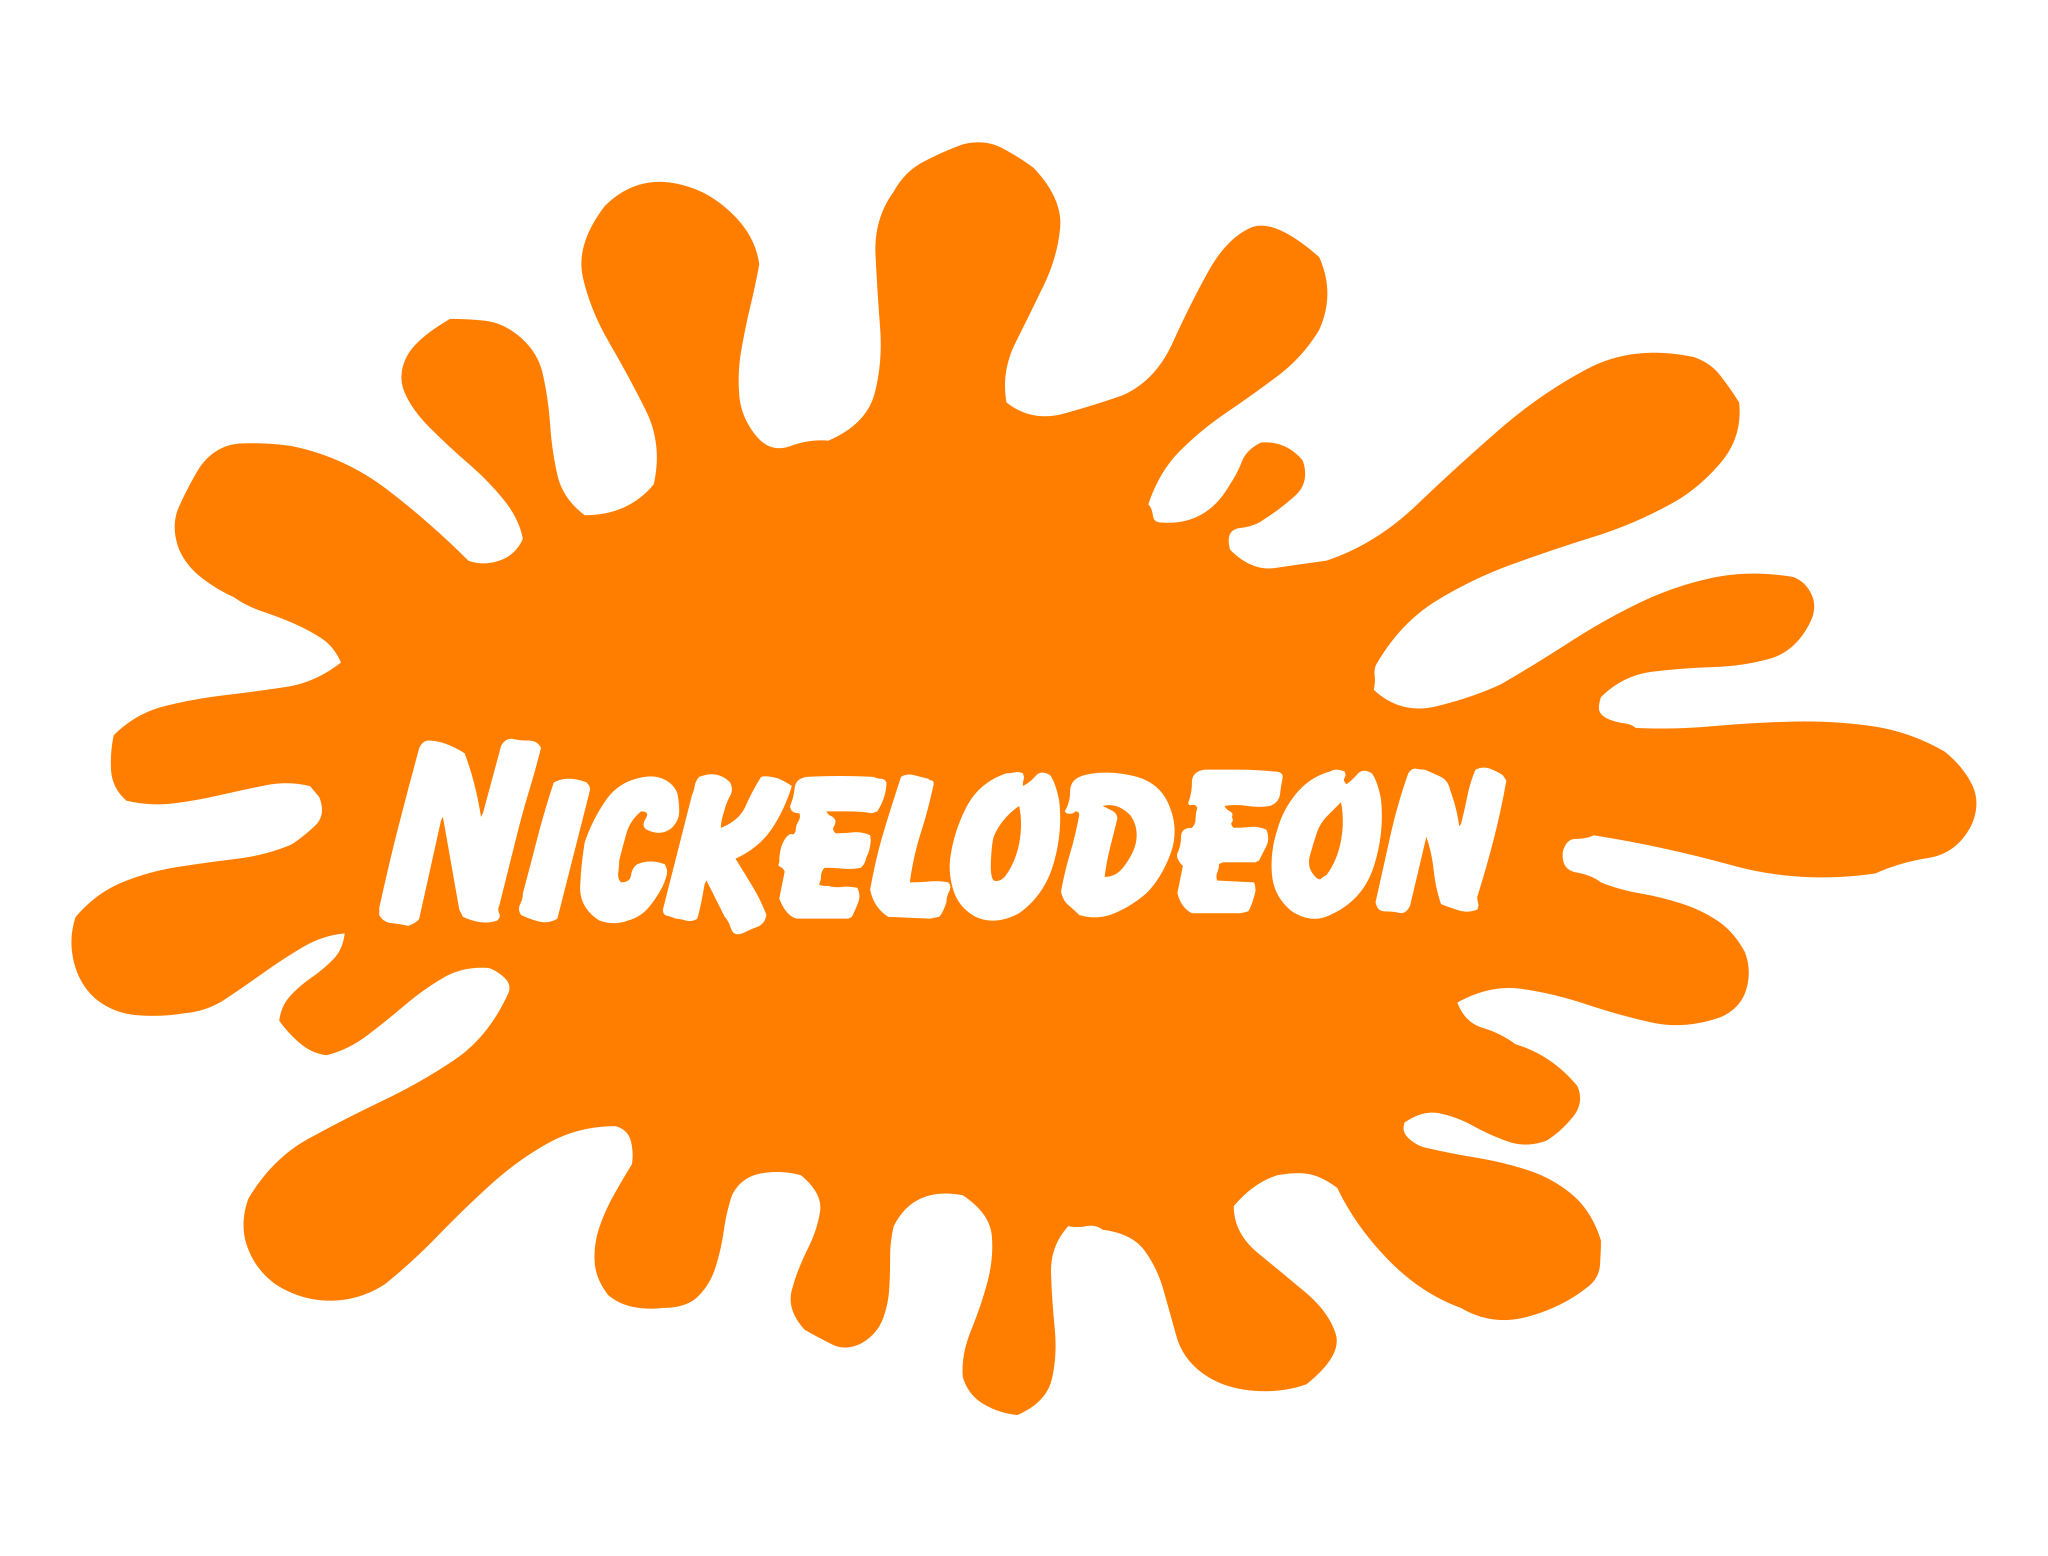 Nickelodeon.png